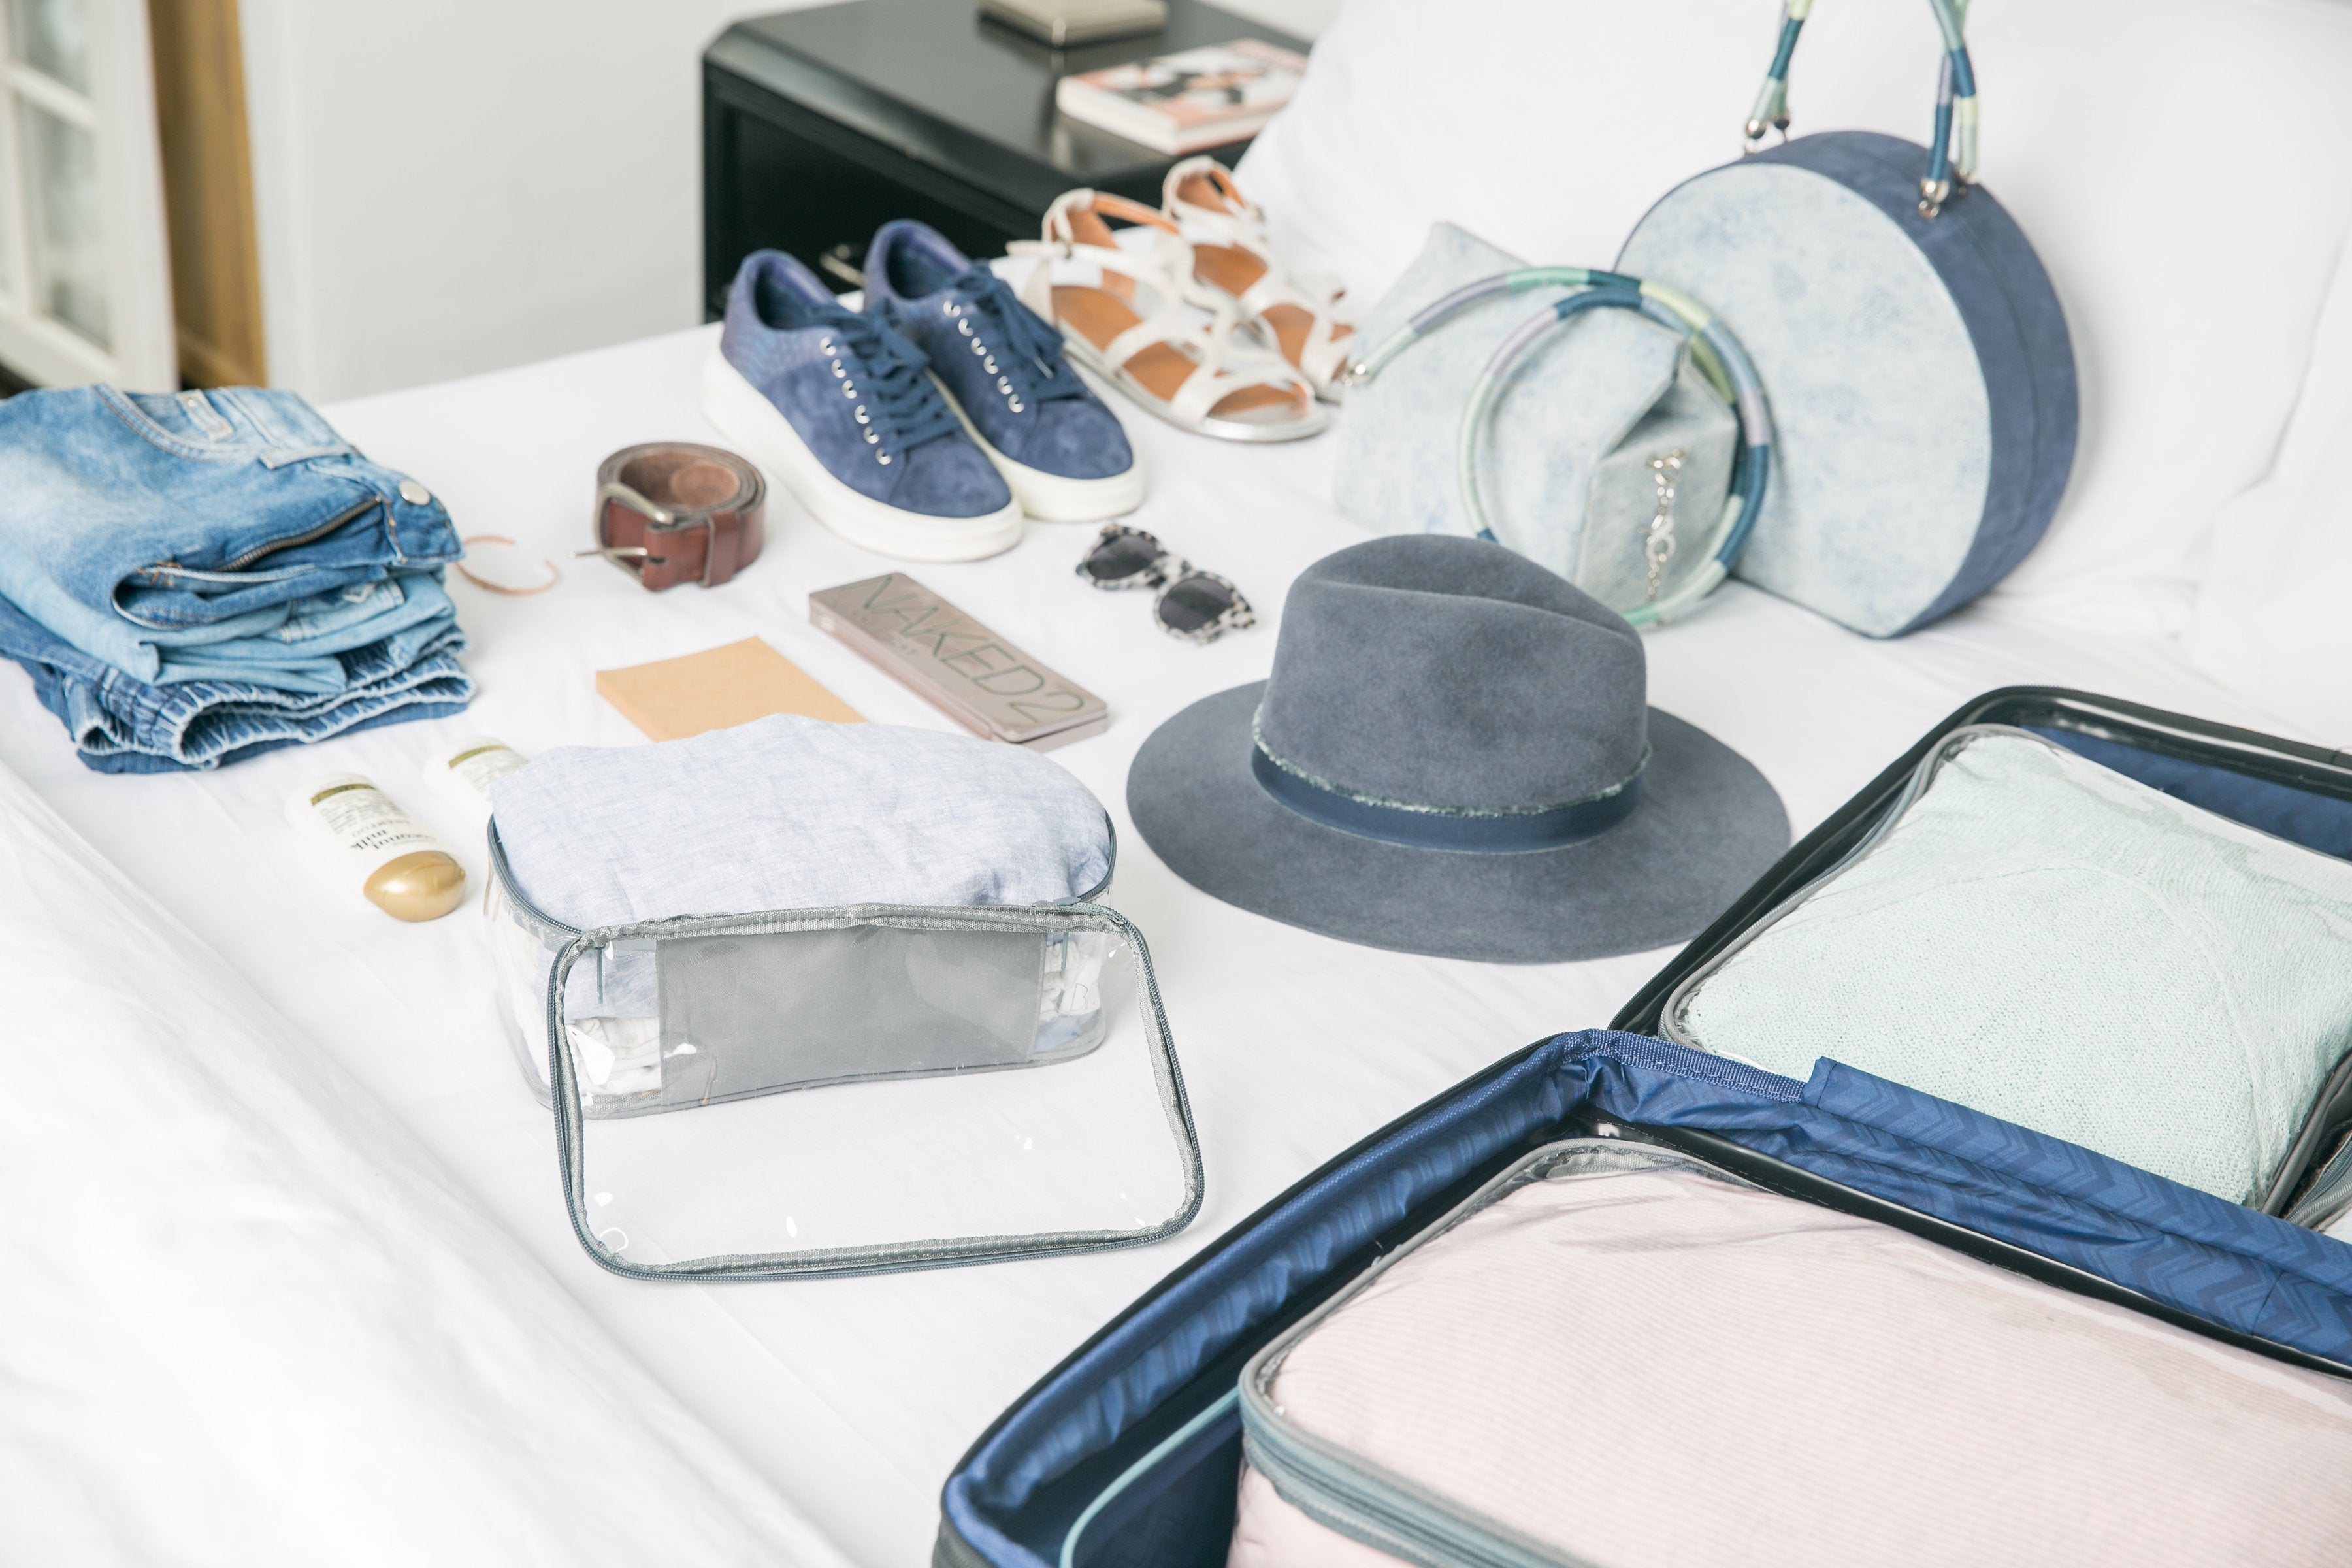 Shoes and other travel essentials